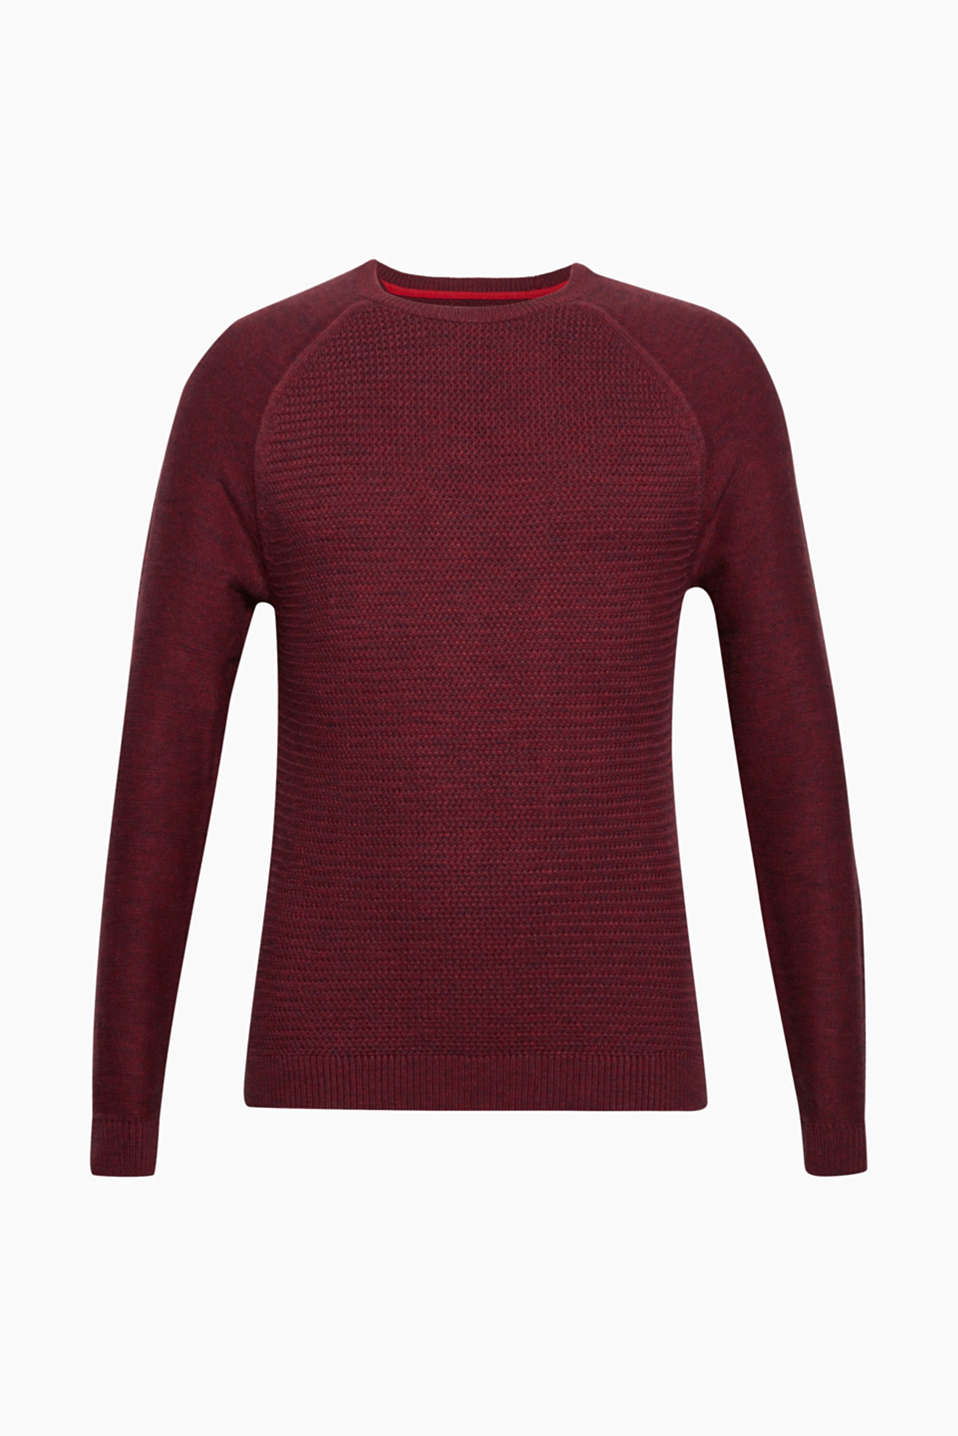 Sweaters, BORDEAUX RED, detail image number 7